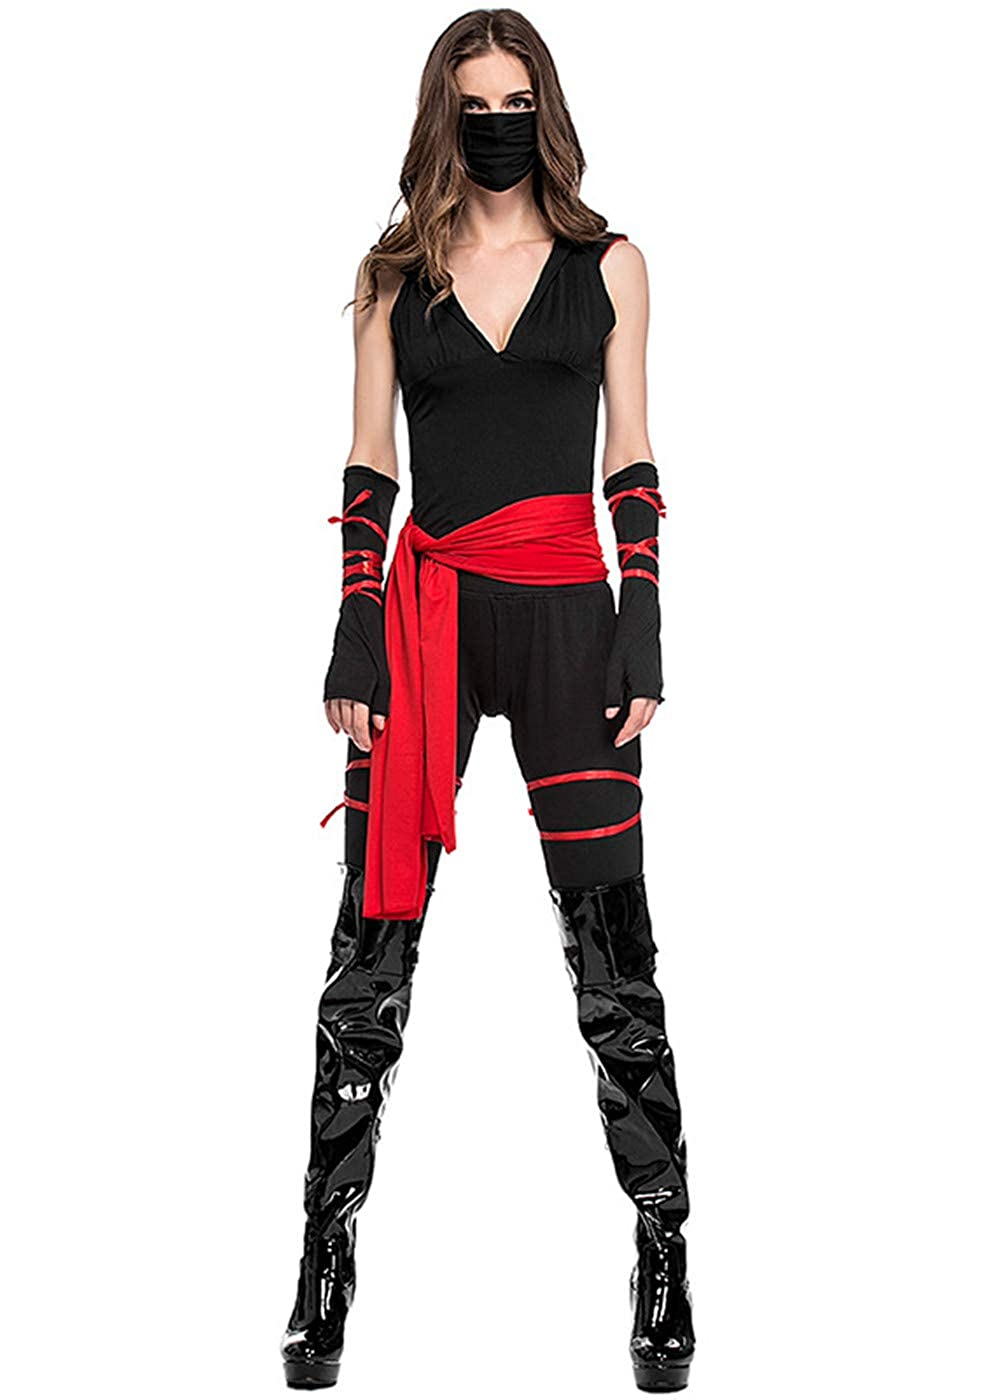 Amazon.com: Halloween Costumes Womens Ninja Cosplay,Ninja ...